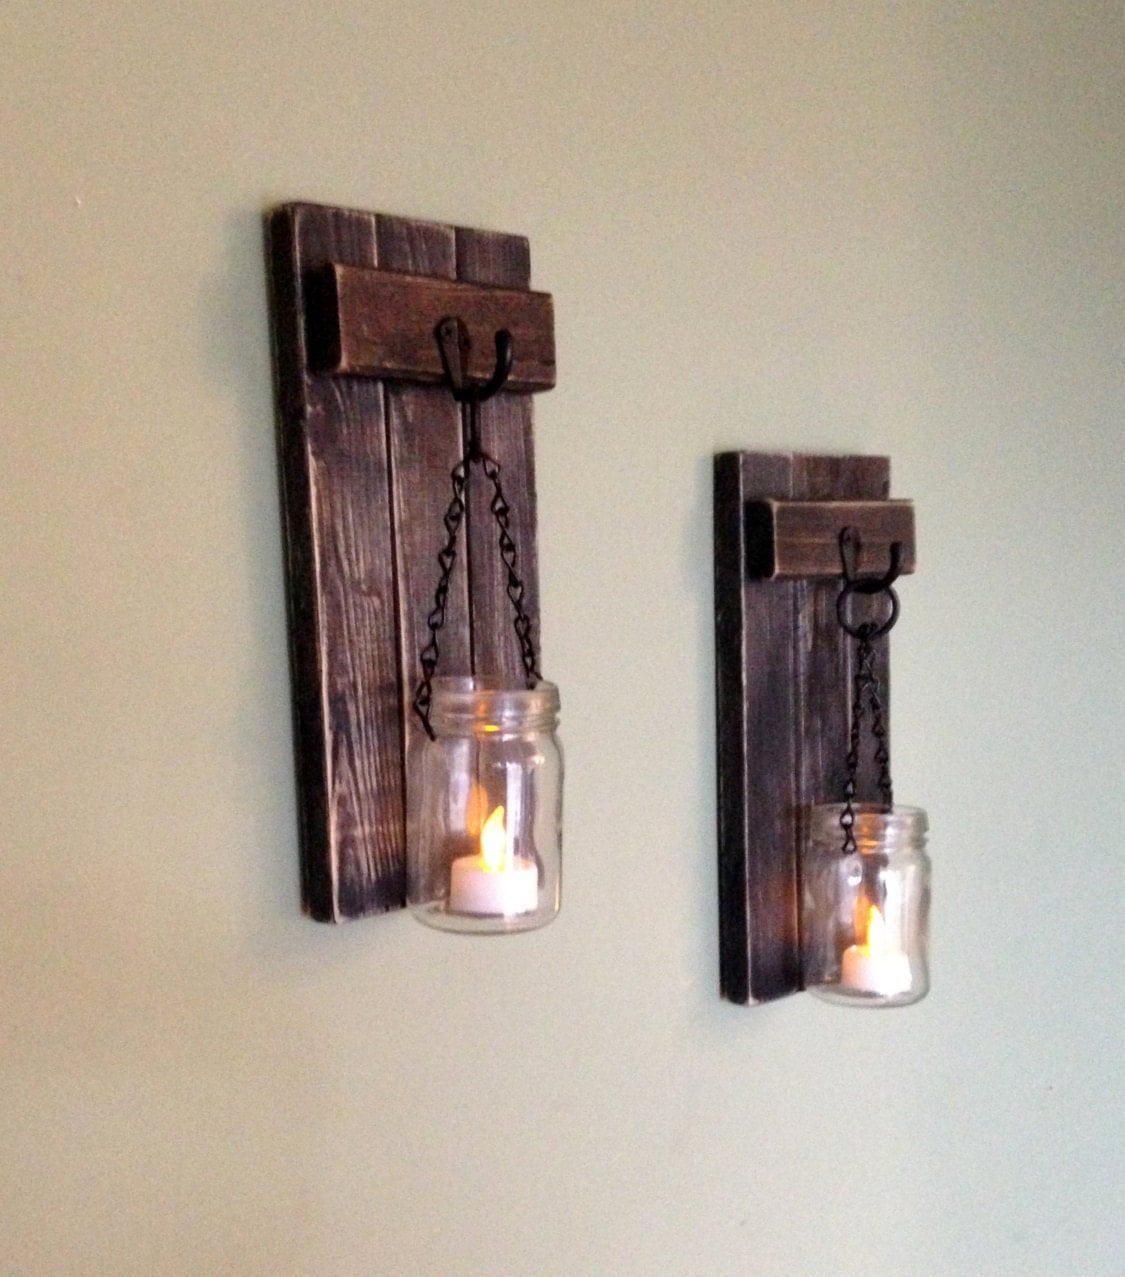 Wall Sconces Decor : Rustic Wall Decor Wall Sconce Wooden Sconce Wooden Candle